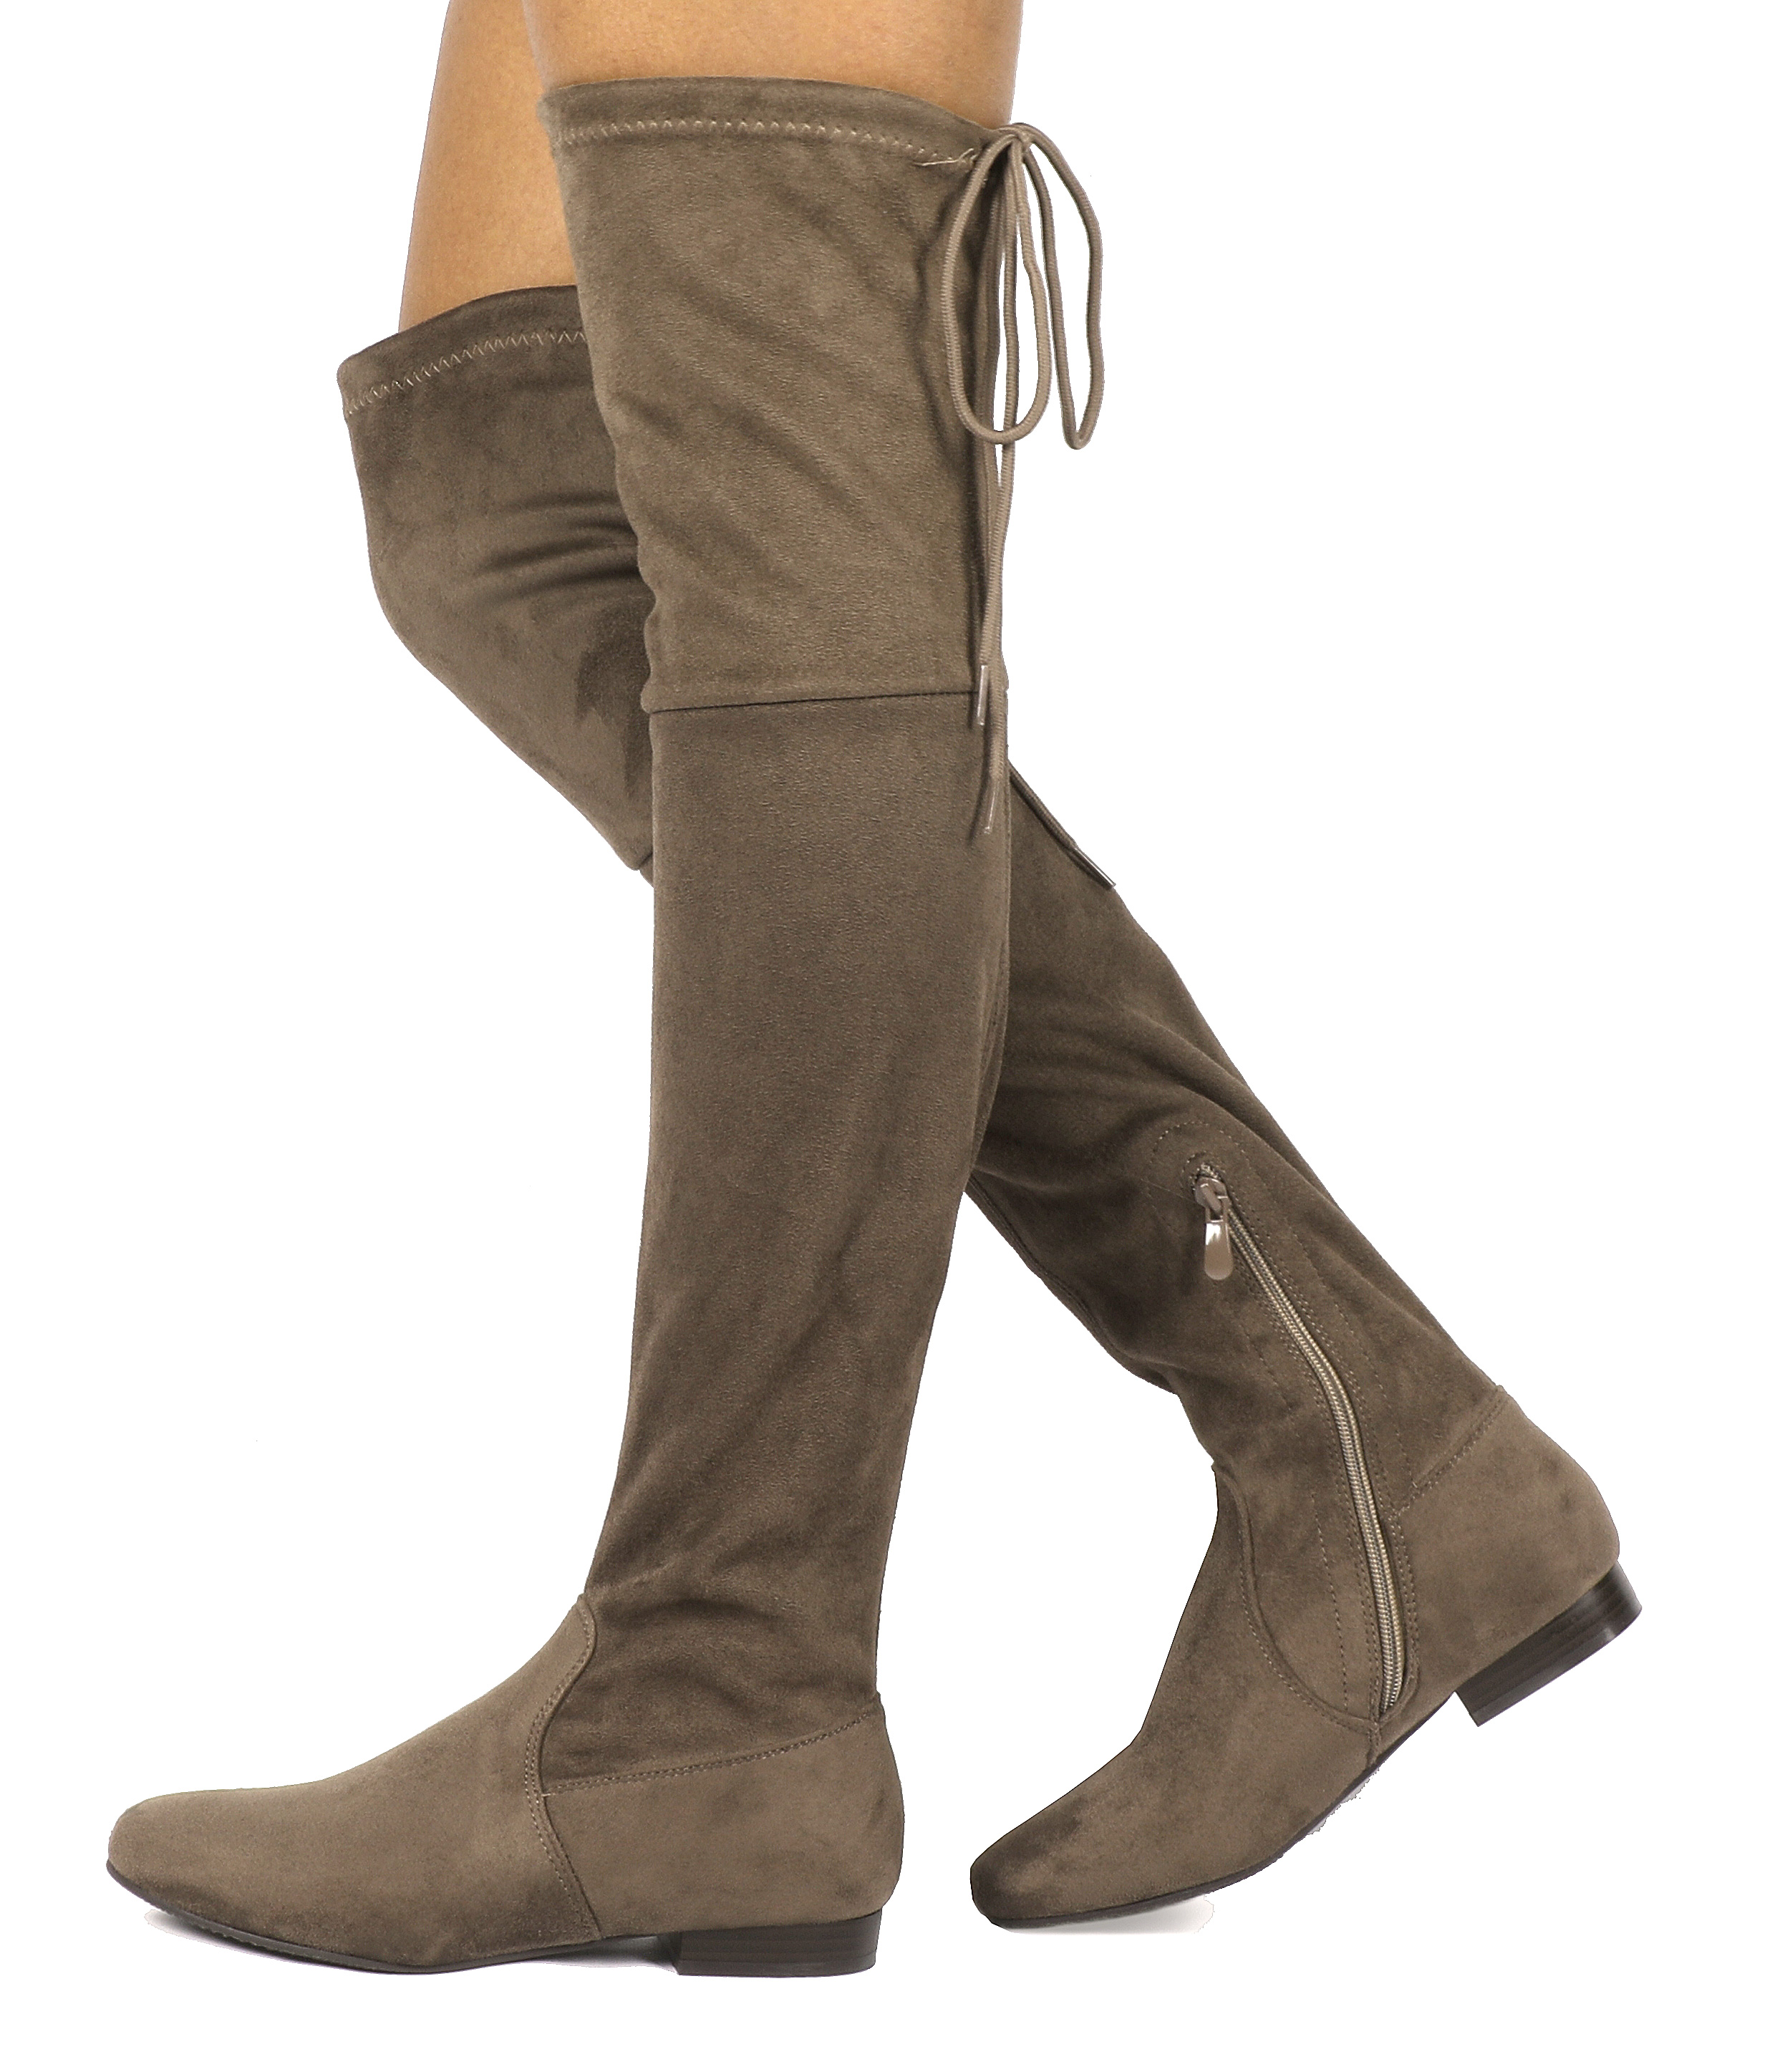 Women-Thigh-High-Flat-Boots-Stretchy-Drawstring-Tie-Fashion-Over-The-Knee-Boots miniatuur 11